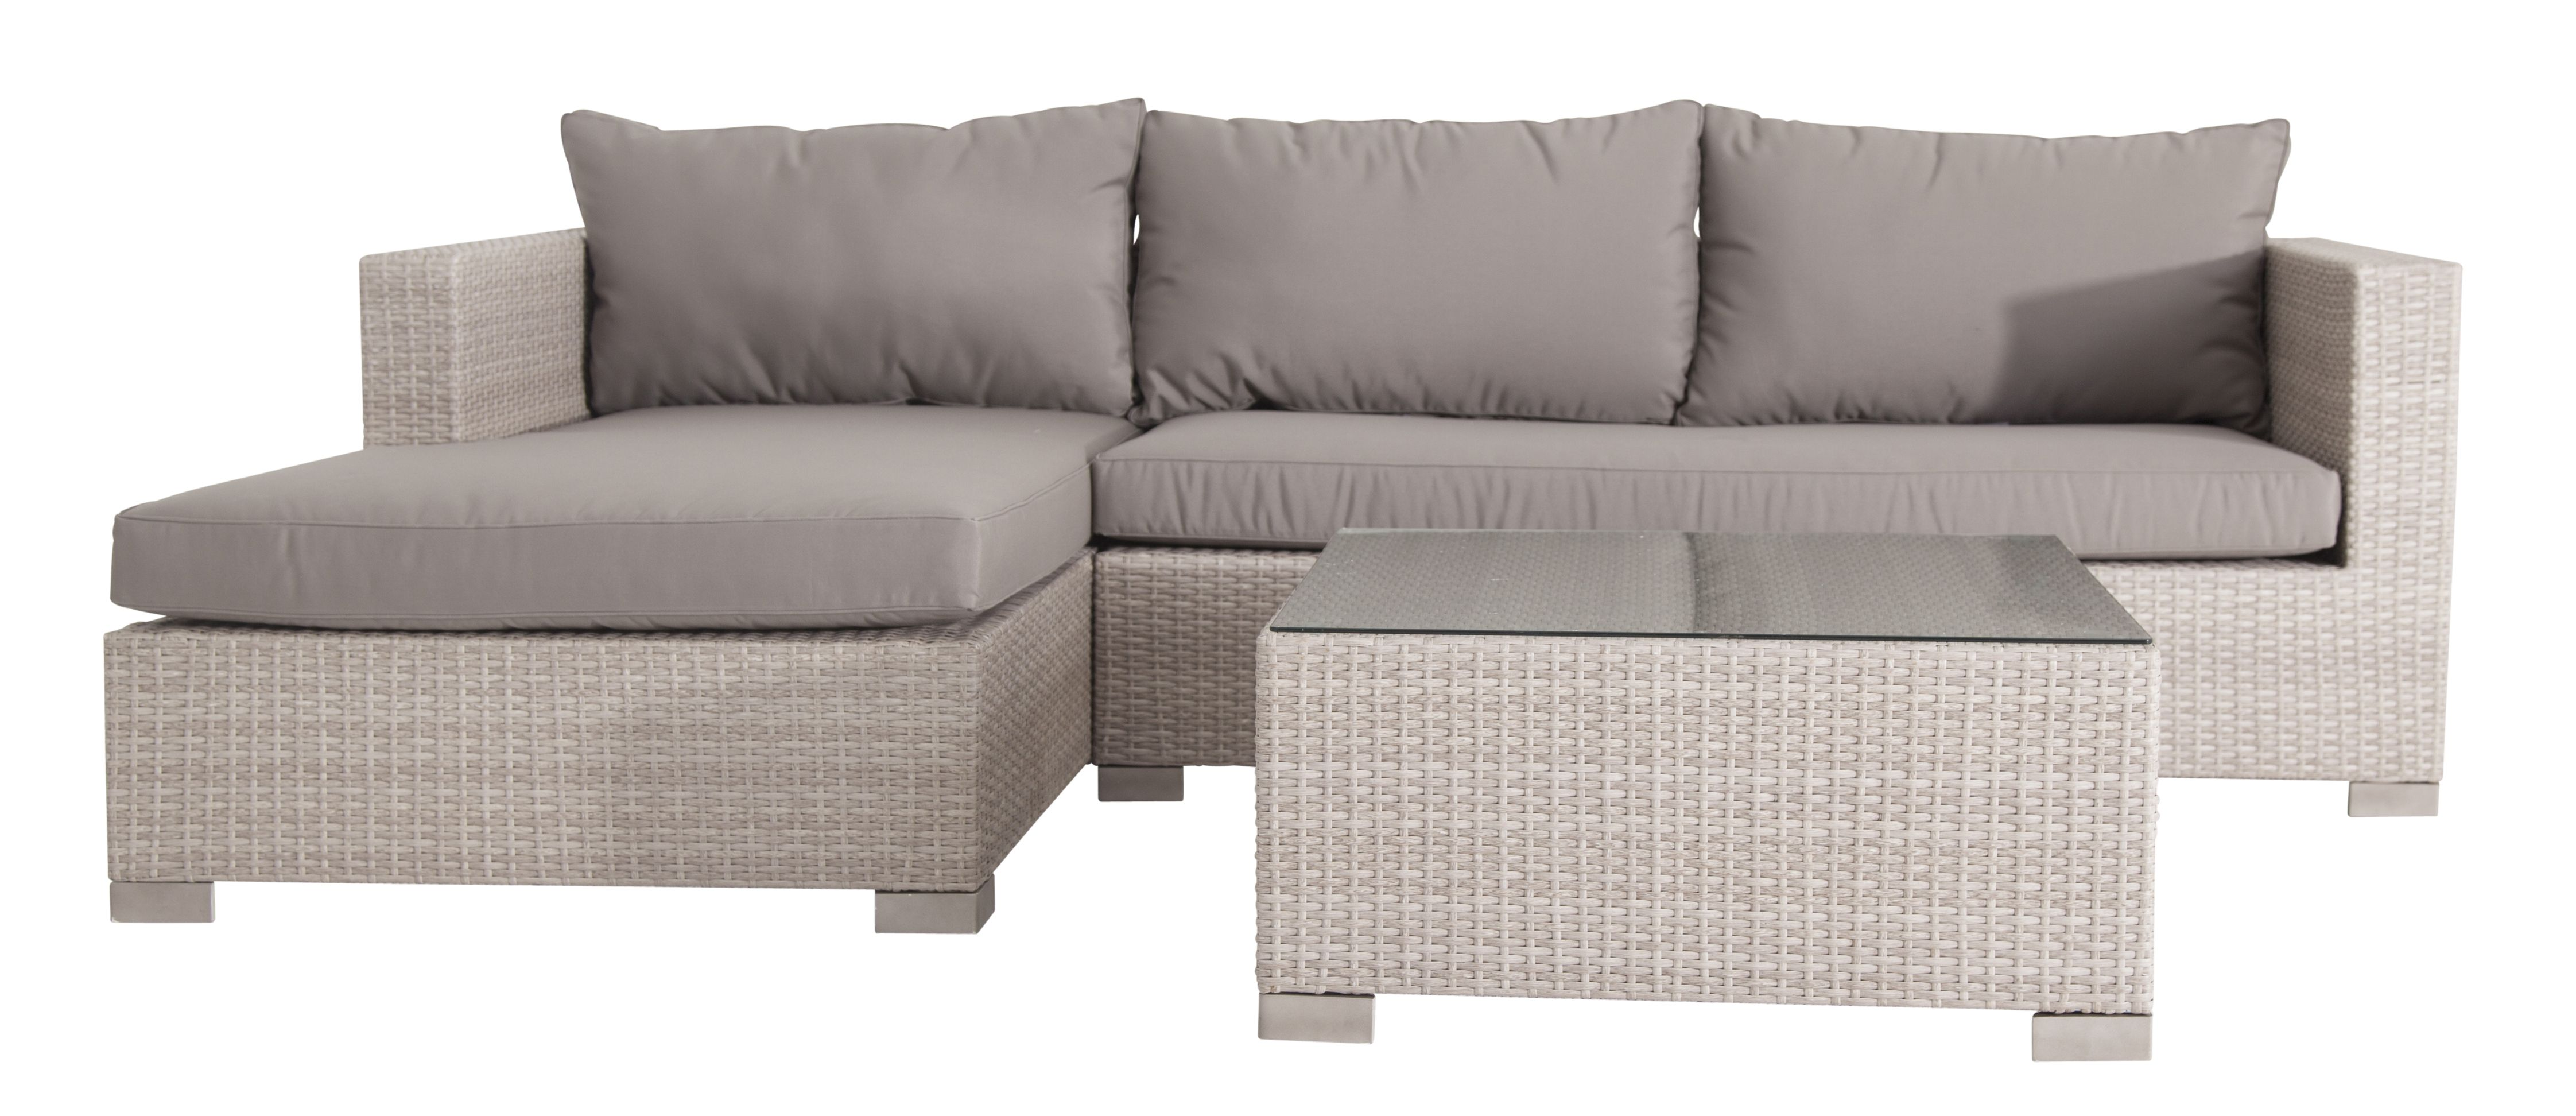 Beautiful Range Of Carefully Designed And Manufactured Outdoor Furniture In Melbourne - Outdoor Furniture Clearance Melbourne